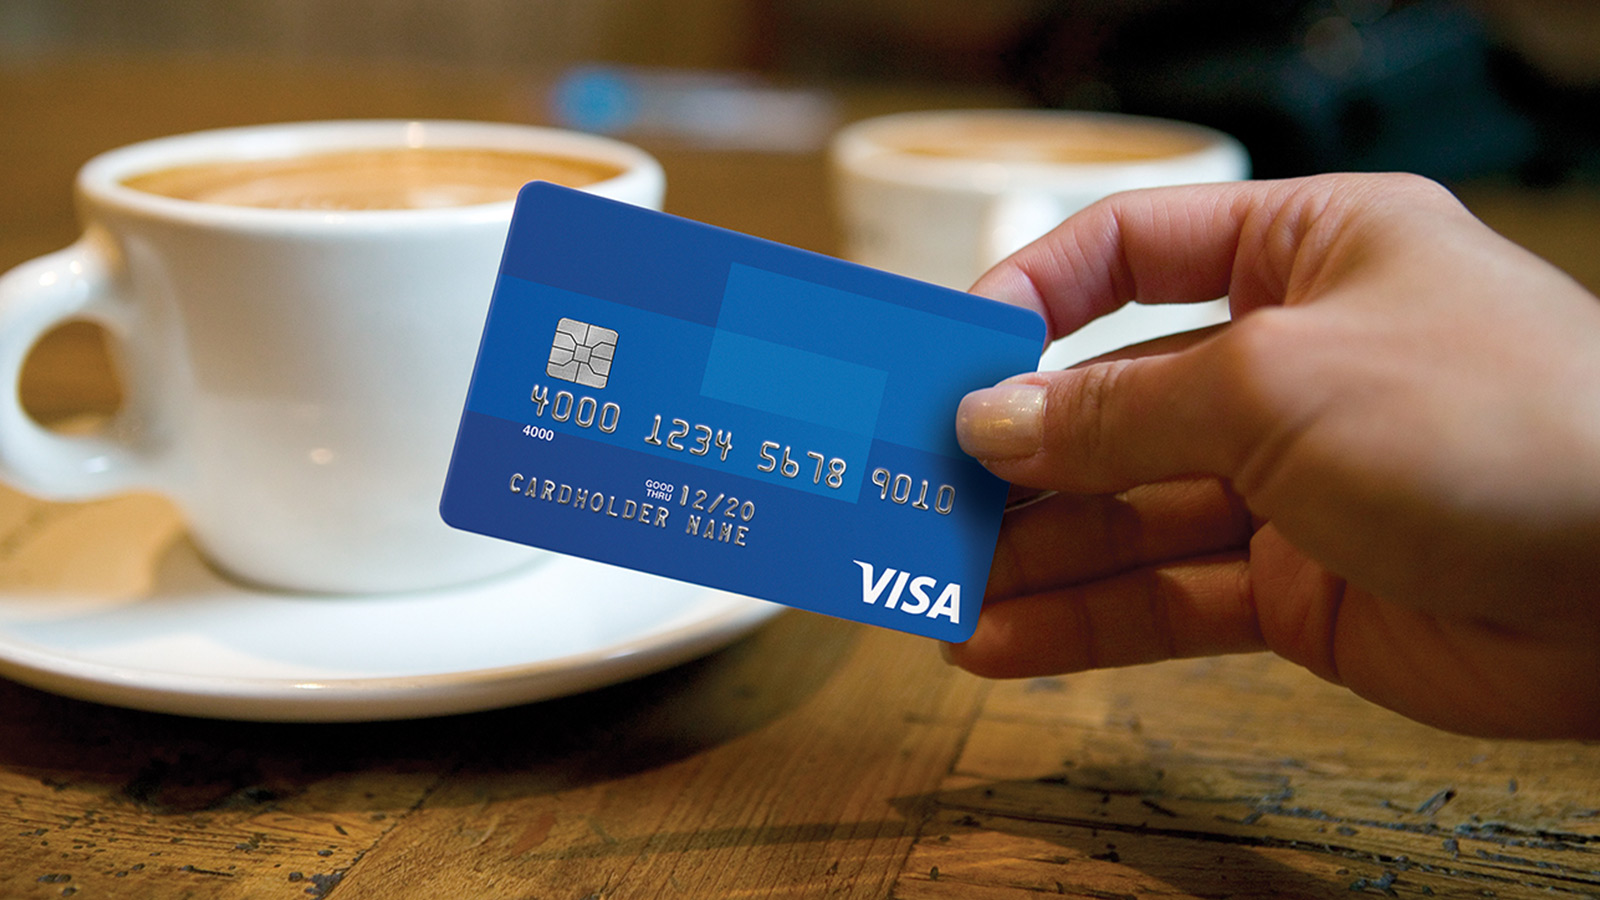 Visa - Chip Cards